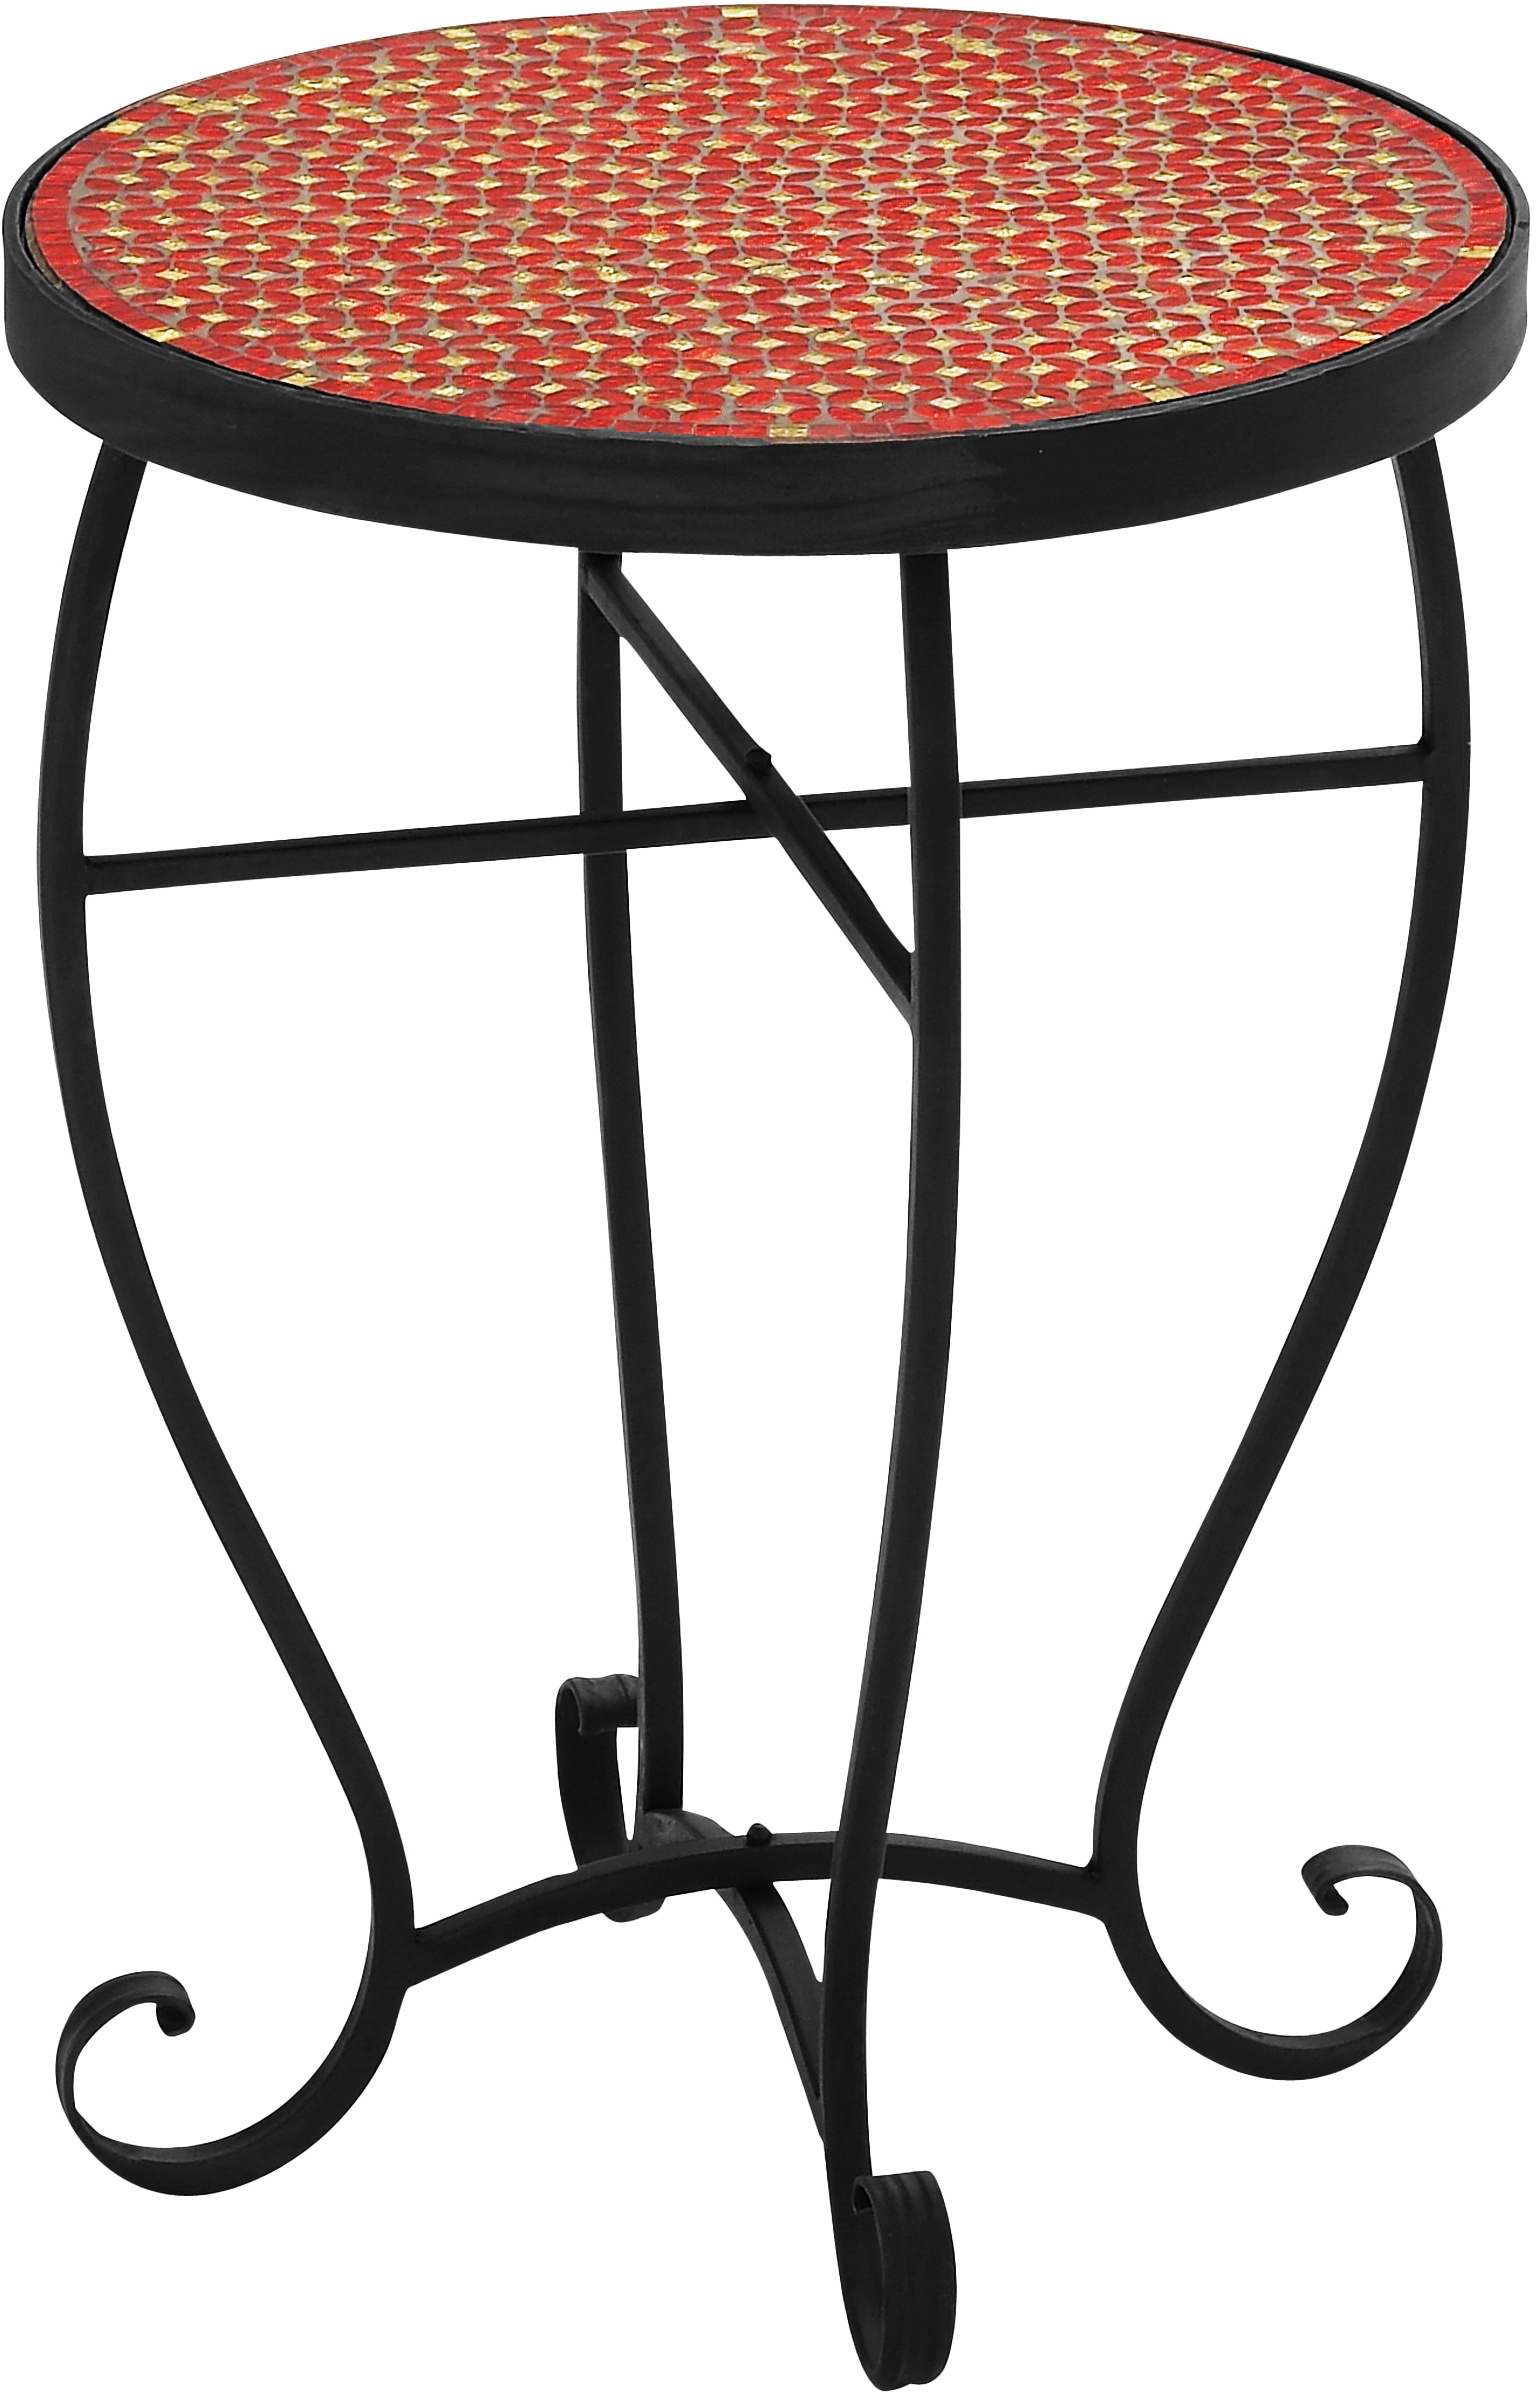 outdoor accent table mosaic red round side indoor end chrome patio dark wood trestle dining silver coffee tray hairpin desk large runner mid century replica furniture pottery barn